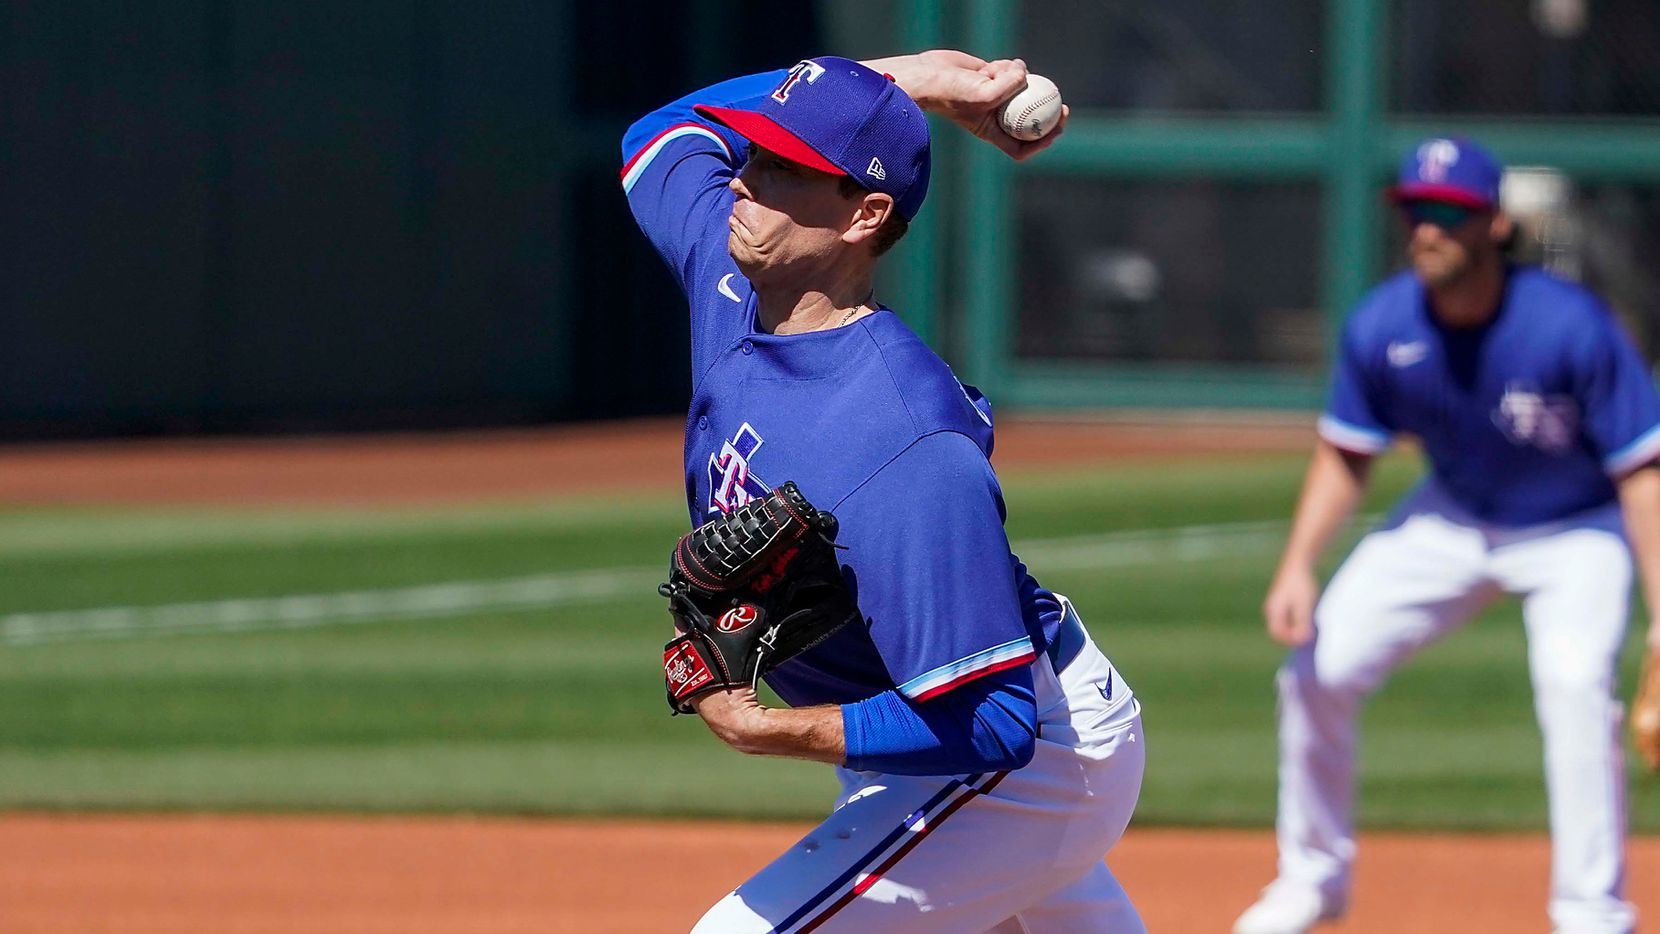 Texas Rangers pitcher Kyle Gibson delivers during the first inning of a spring training game against the San Francisco Giants at Surprise Stadium on Monday, March 1, 2021, in Surprise, Ariz.